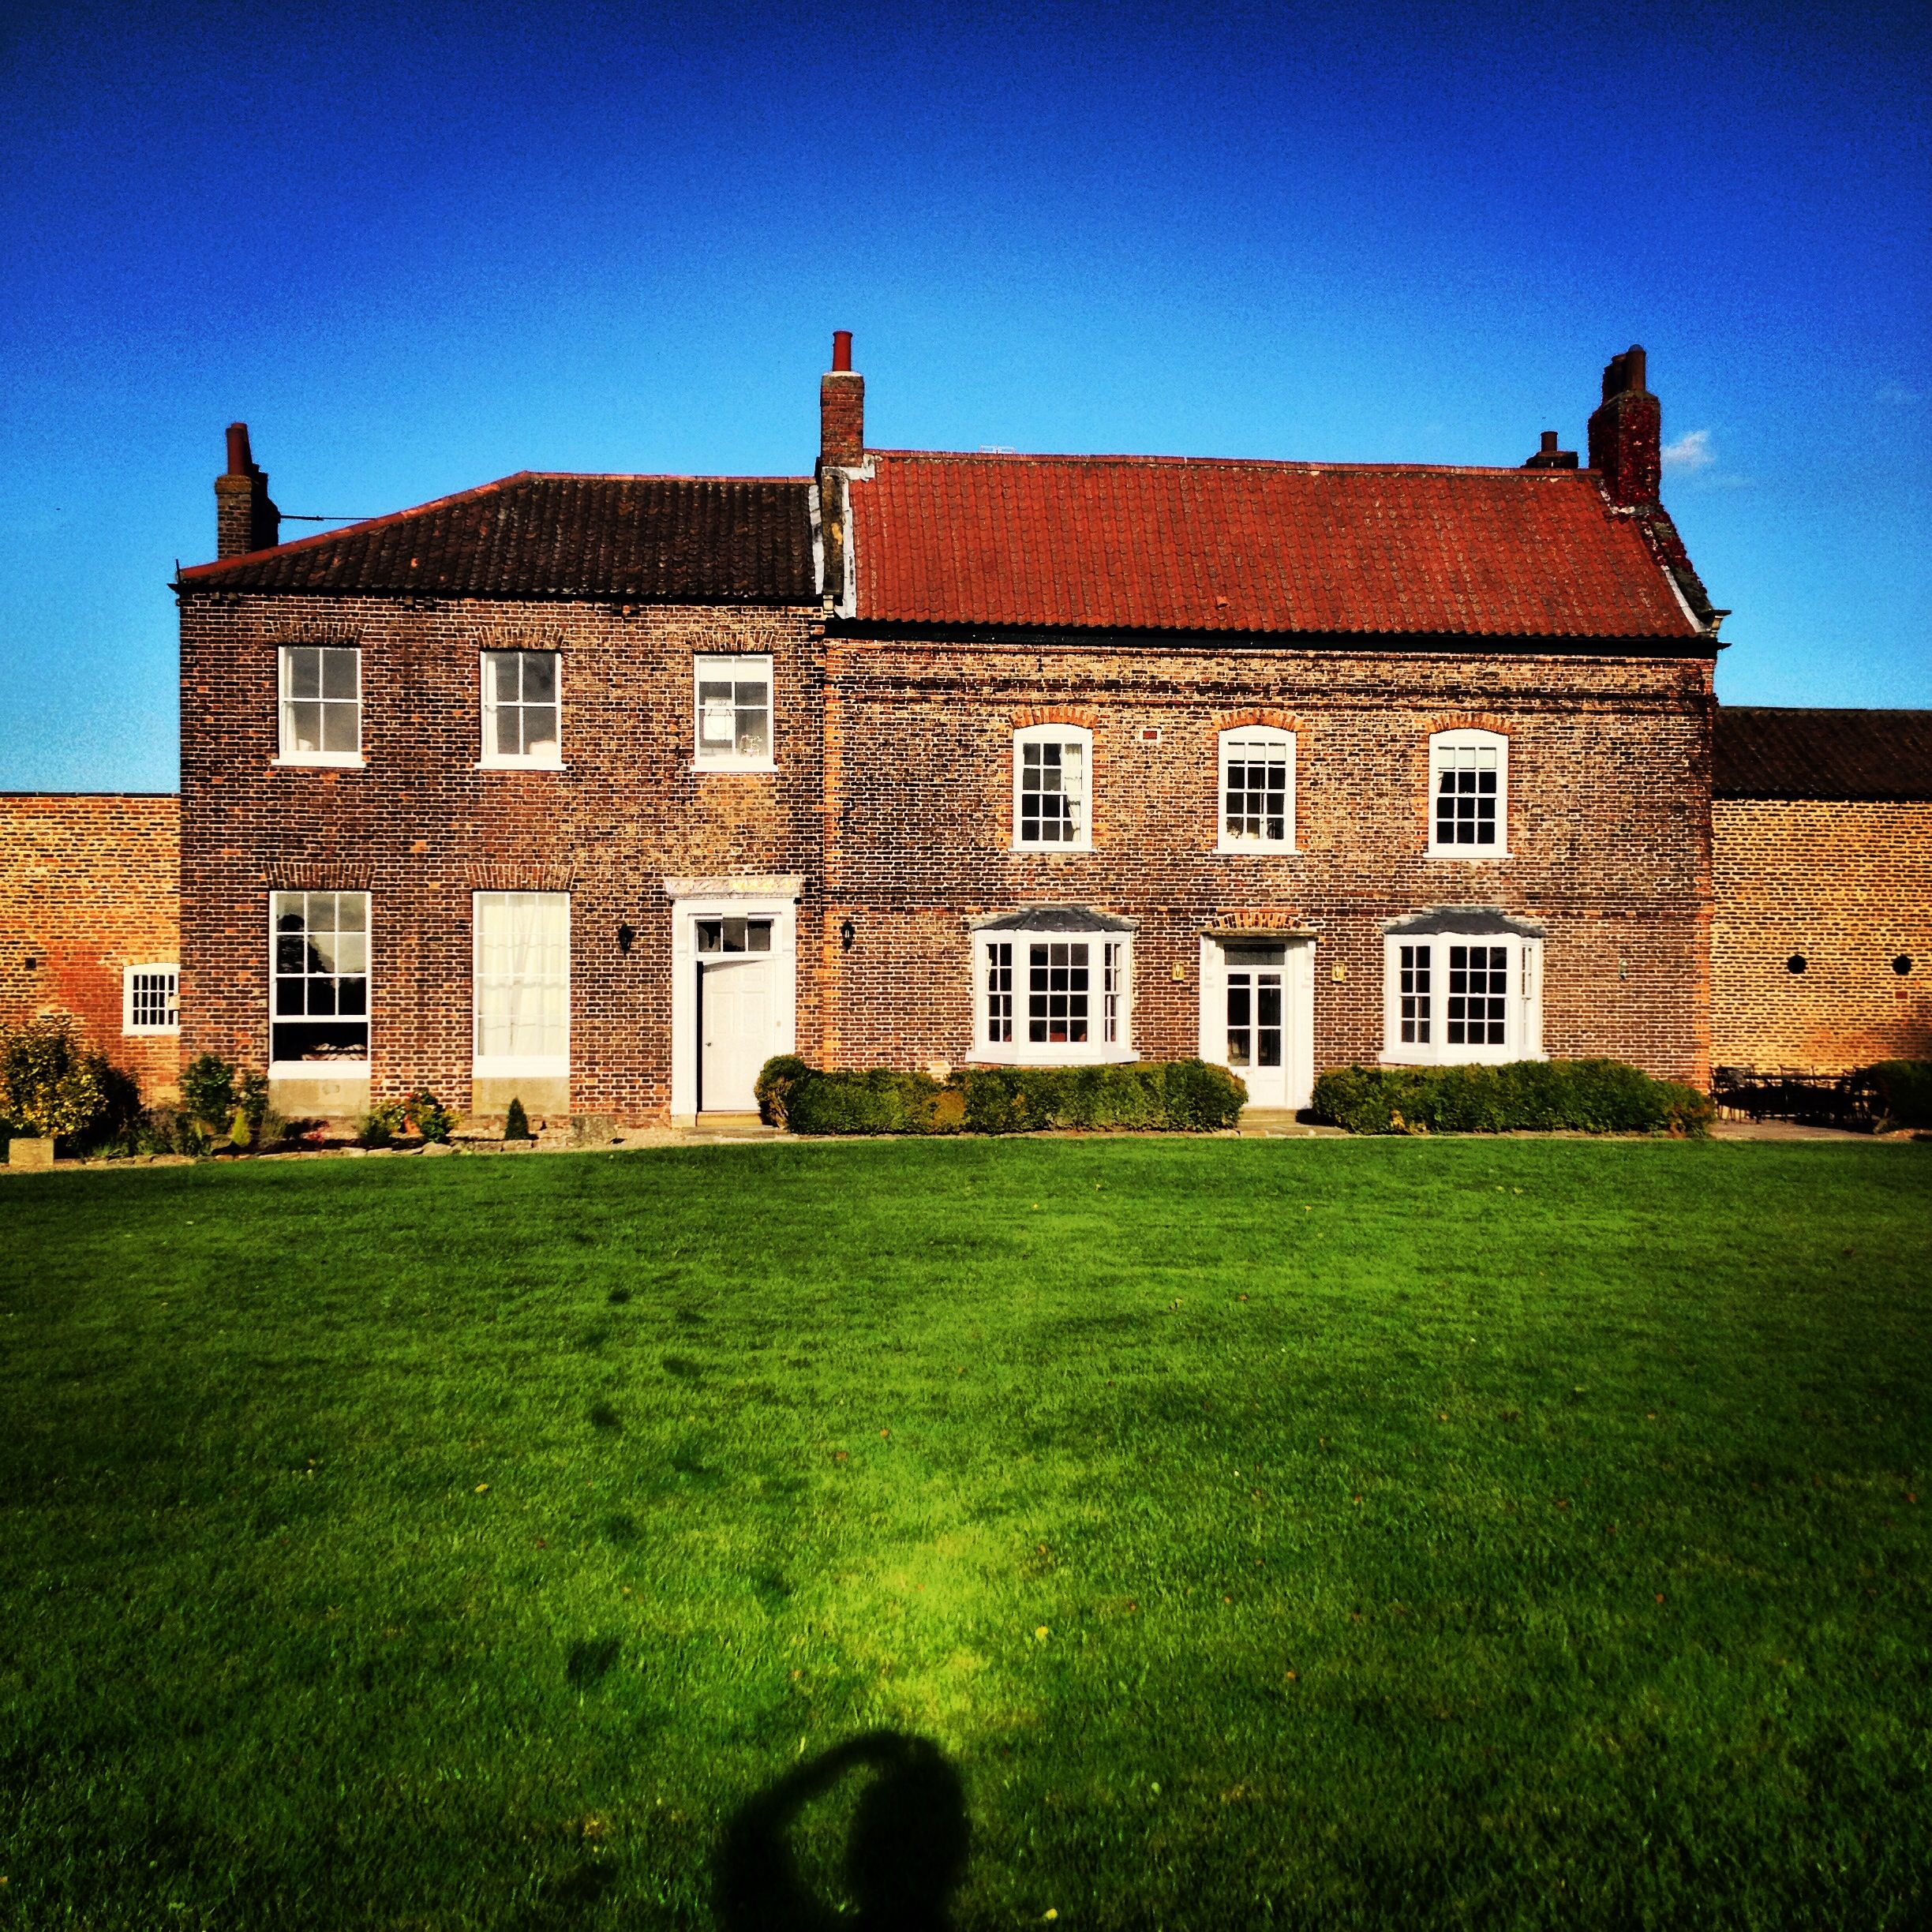 Lovely place to work at hornington manor